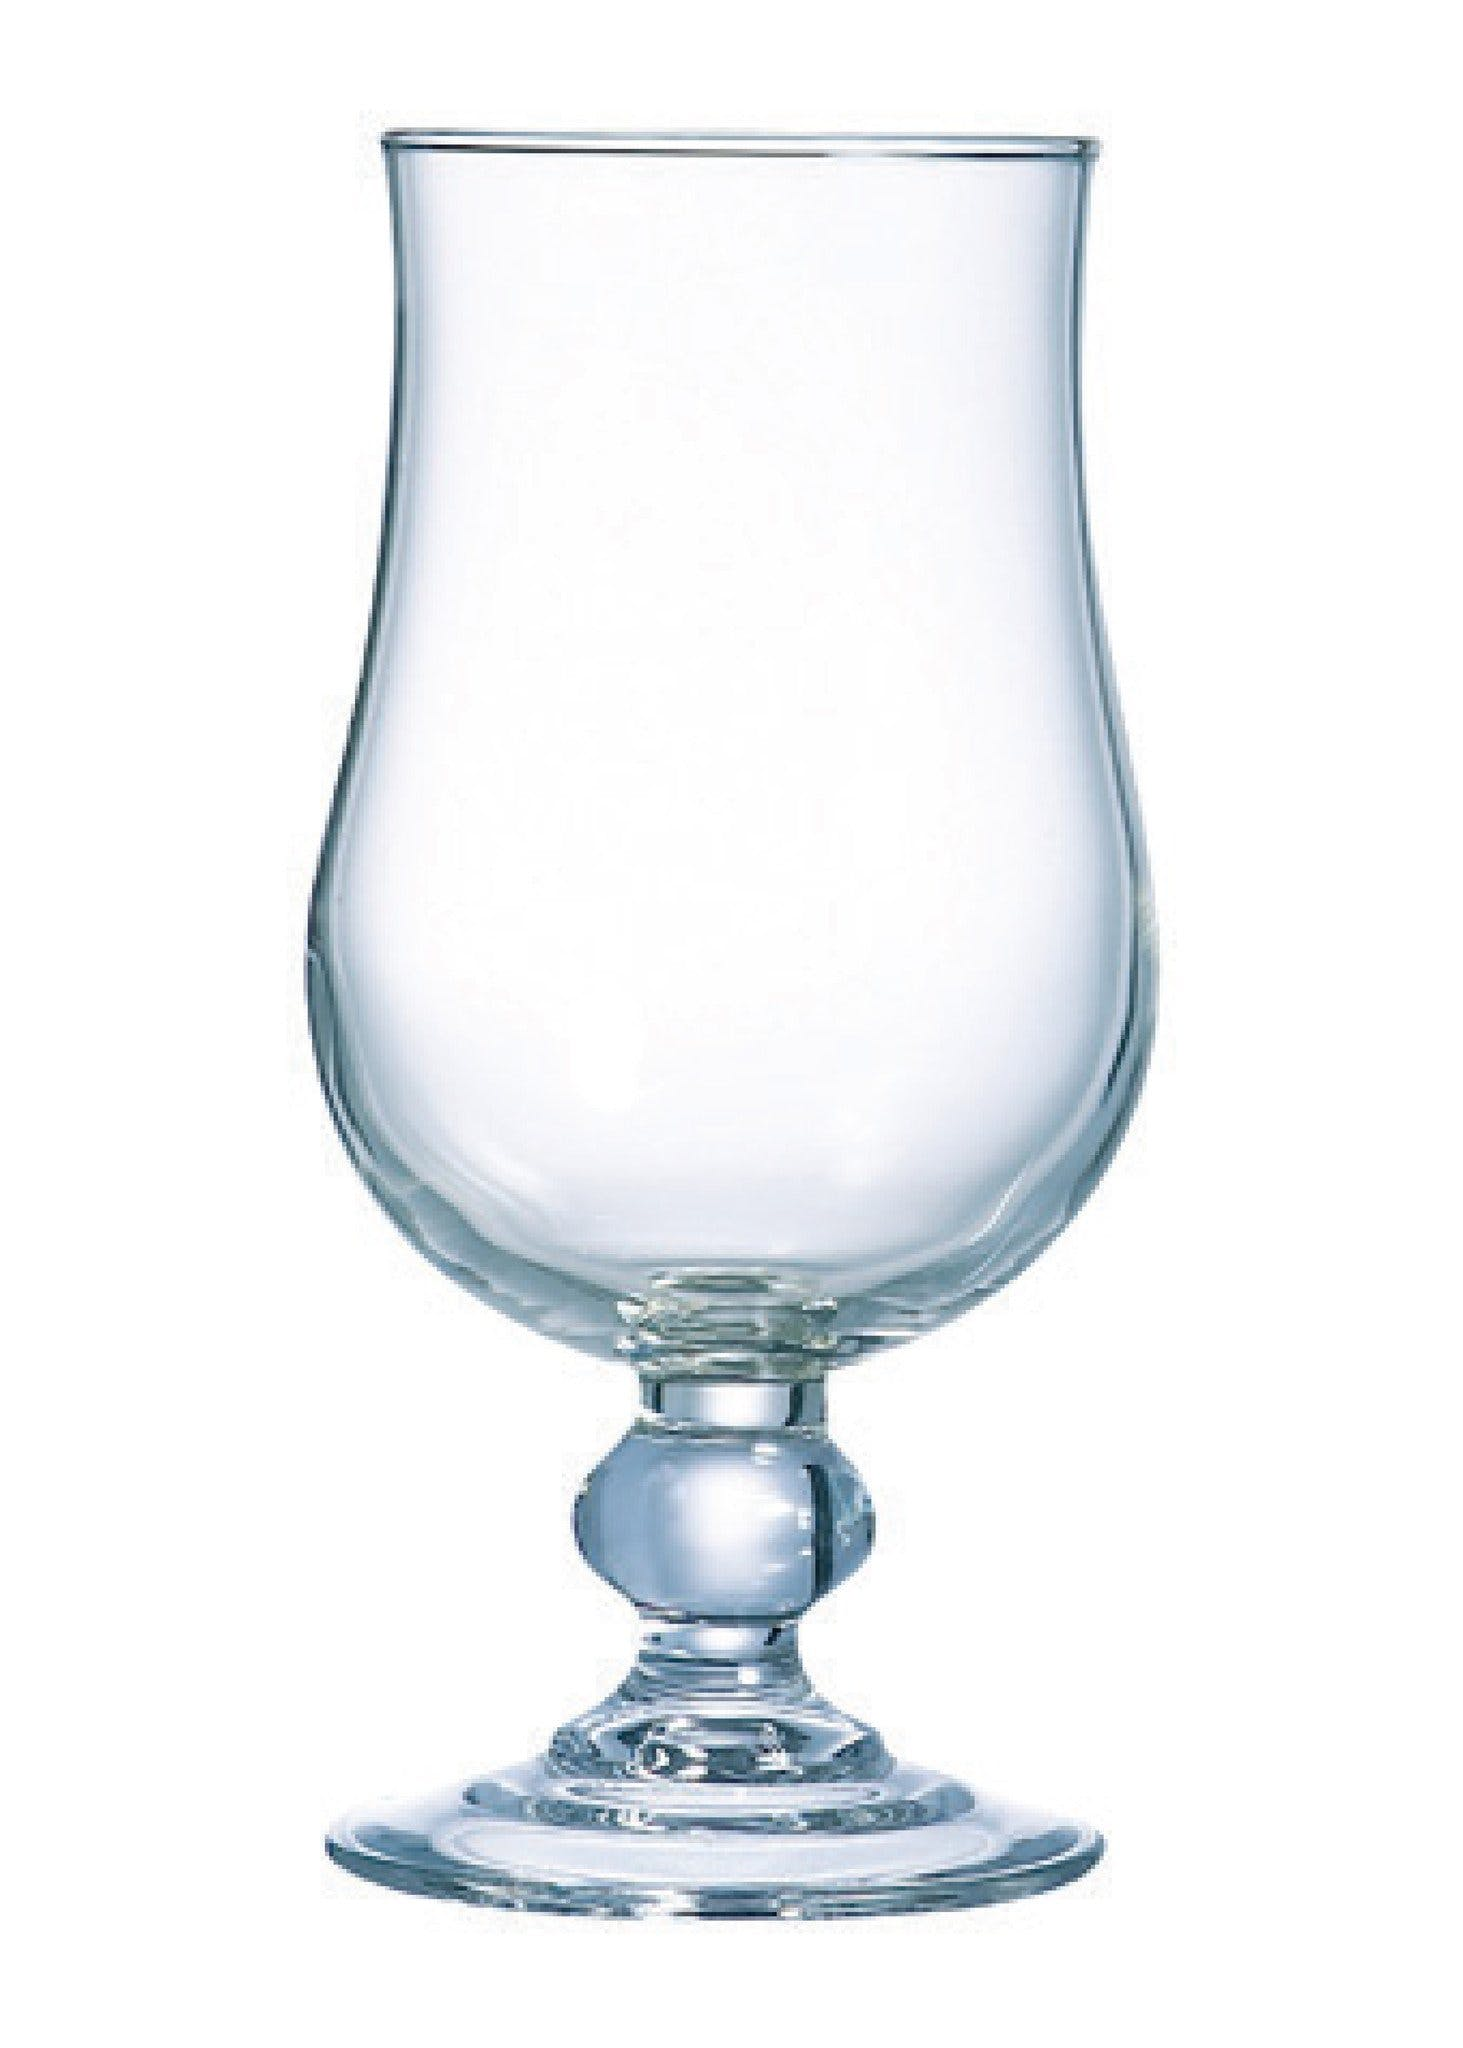 14.75 oz. Tulip Glass #637 - sold by Clearwater Gear